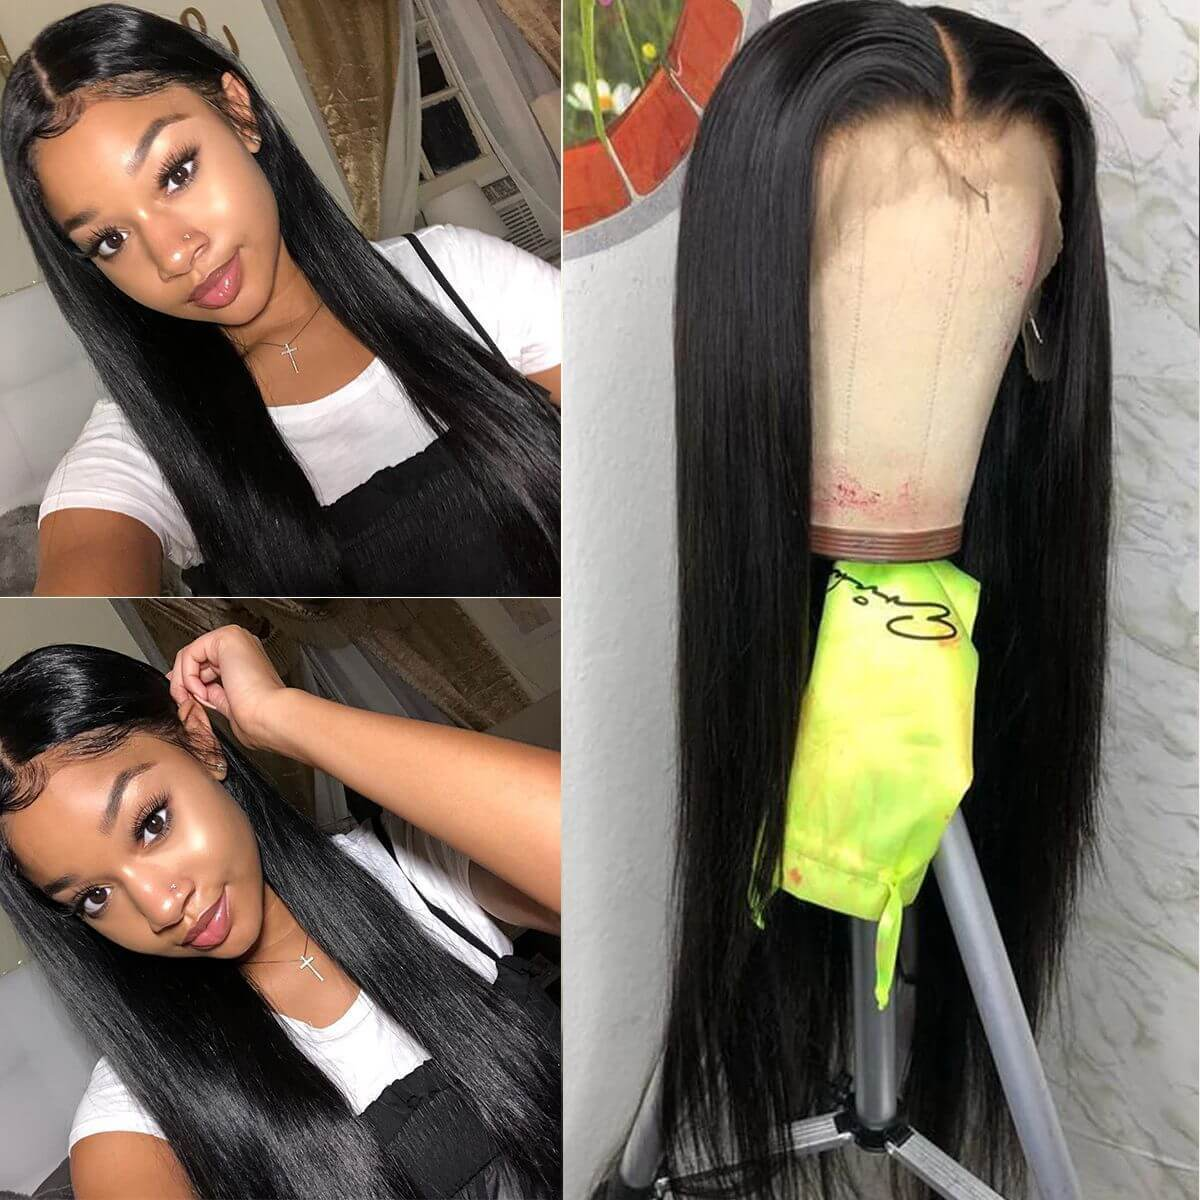 360 straight frontal wig,360 straight lace front wig,360 lace frontal wigs,straight 360 lace frontal wigs,straight hair lace front wig,360 lace front wig,360 front wig,lace front 360 wigs,cheap 360 lace front wigs,human hair 360 lace front wigs